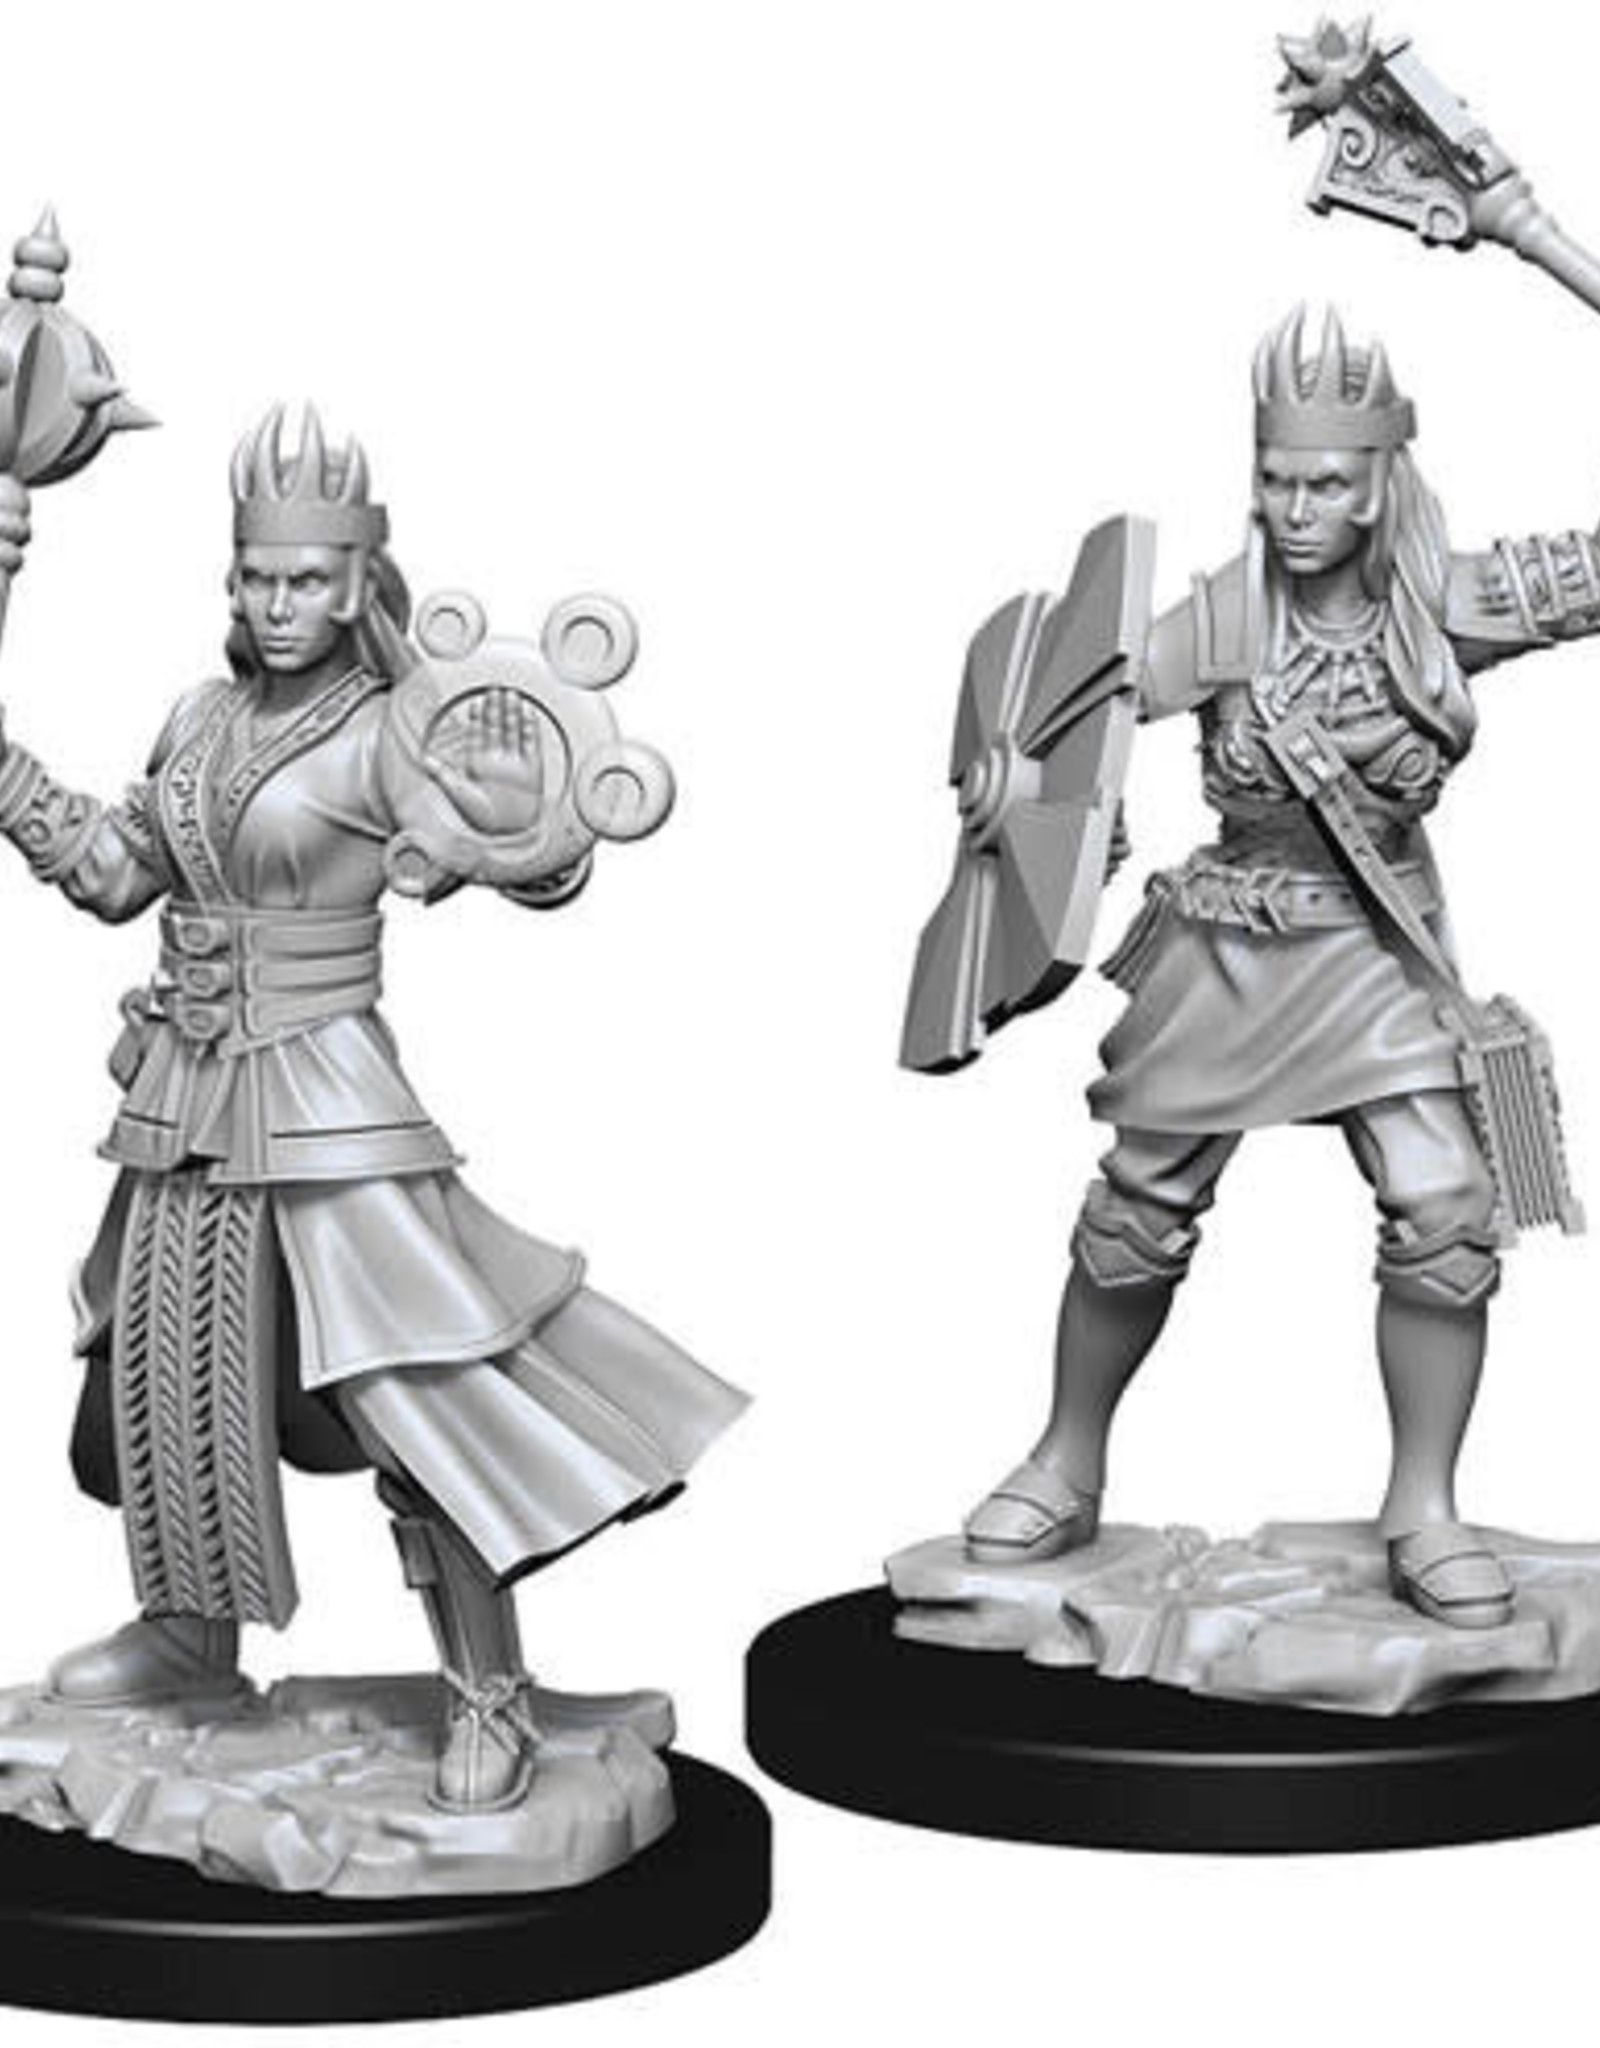 WizKids D&D Nolzur Human Cleric (She/Her/They/Them)